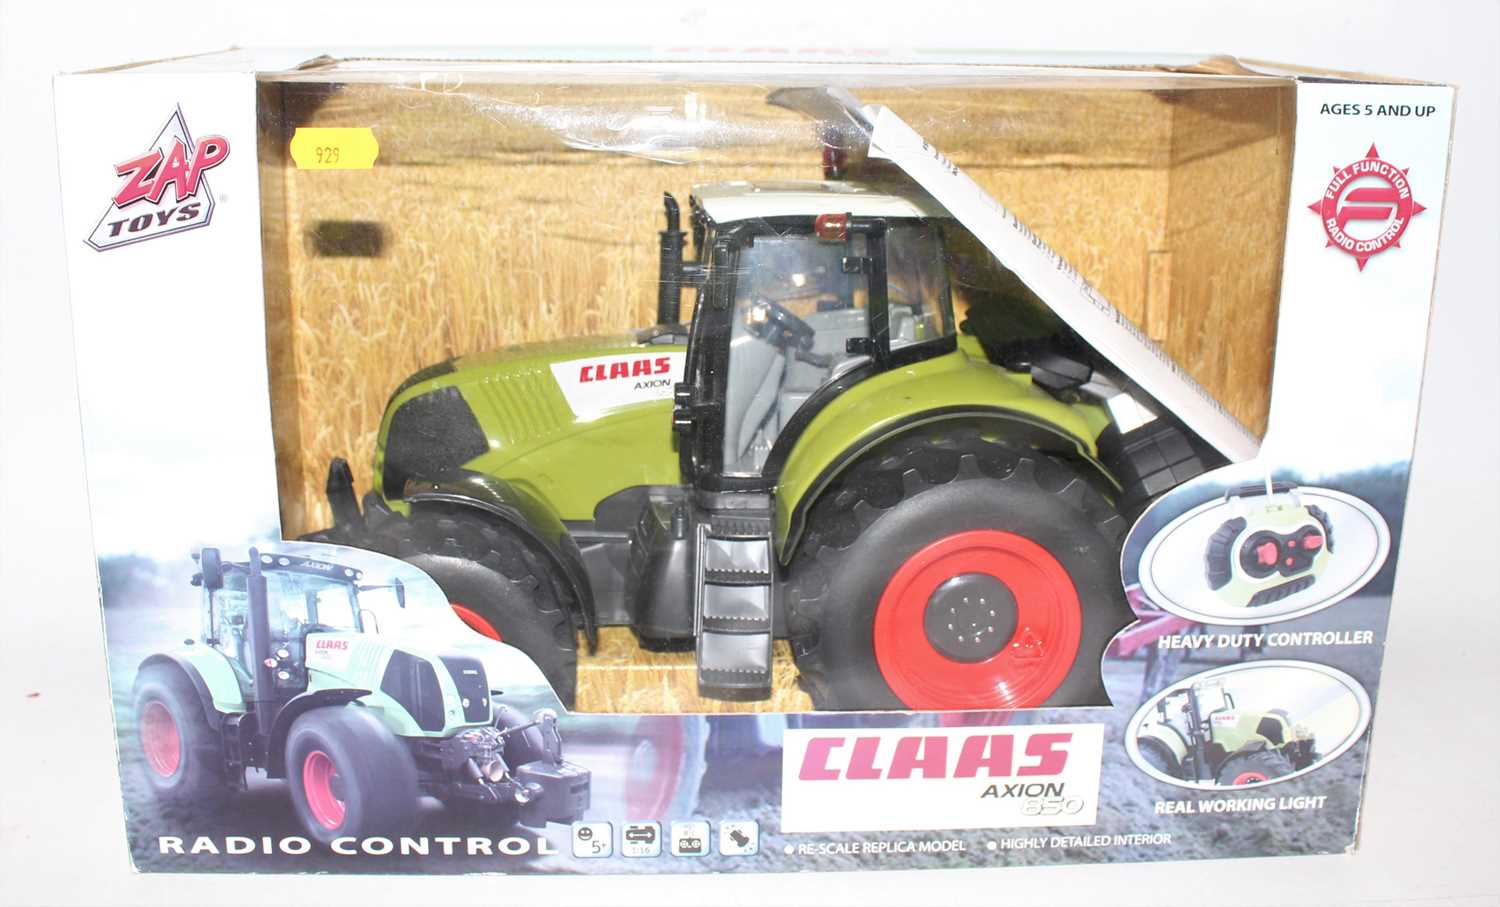 Zap Toys Radio Controlled model of a Claas Axion 850 tractor with control unit housed in the